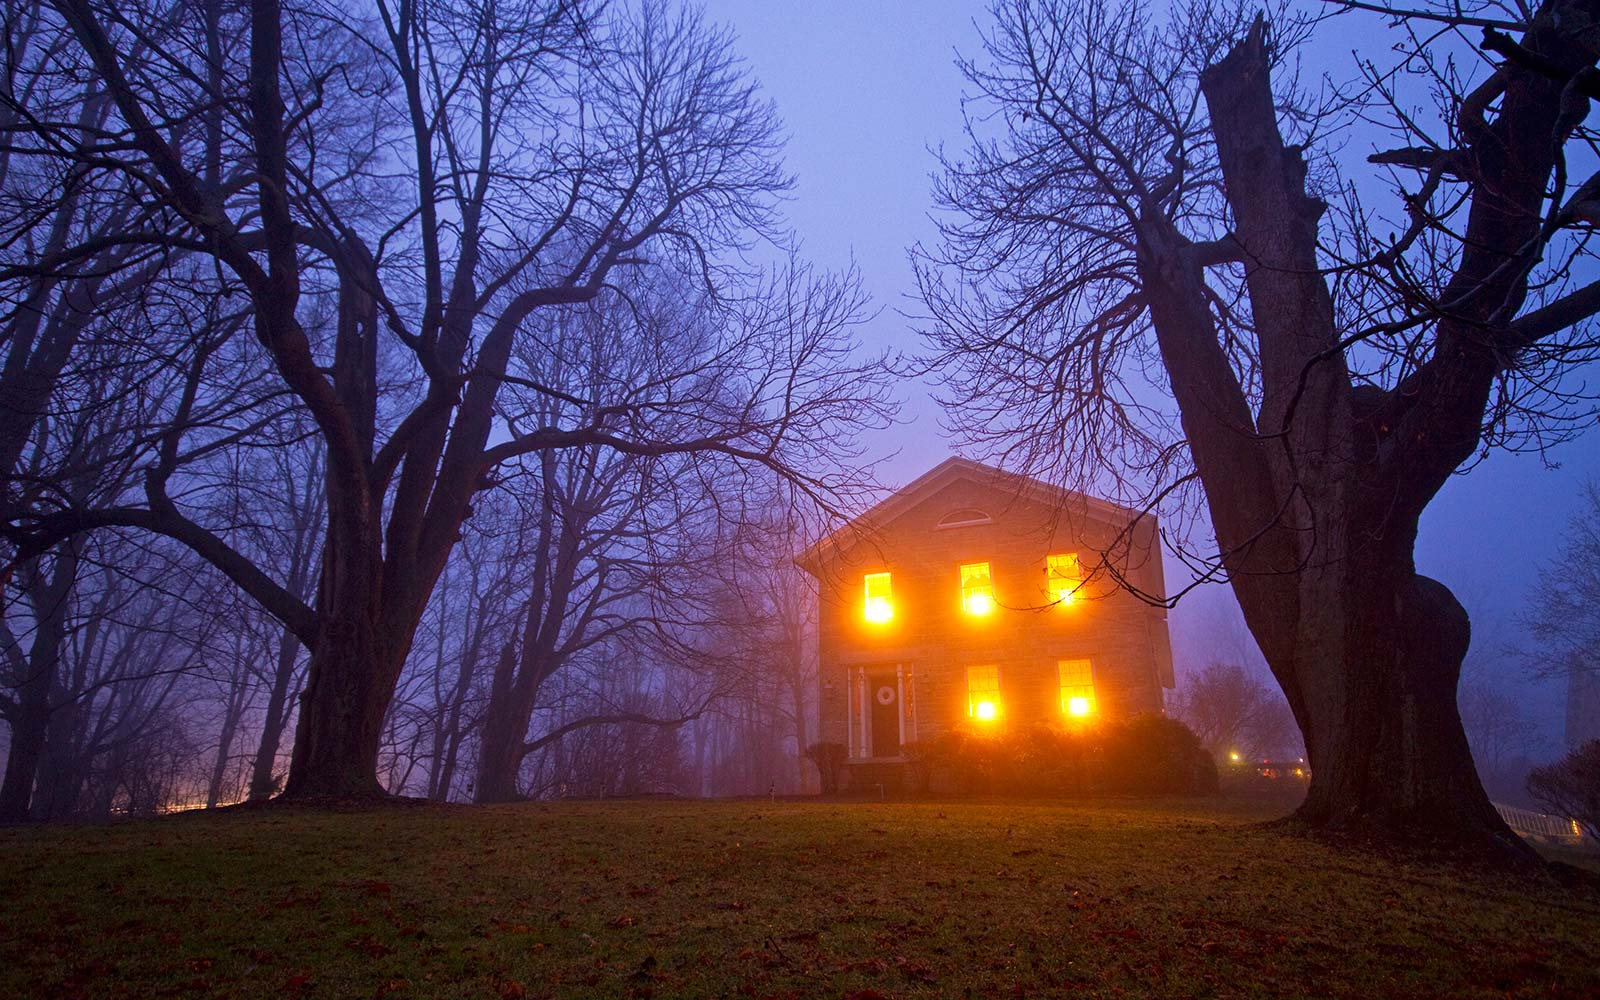 haunted house paranormal activity belief halloween foggy forest